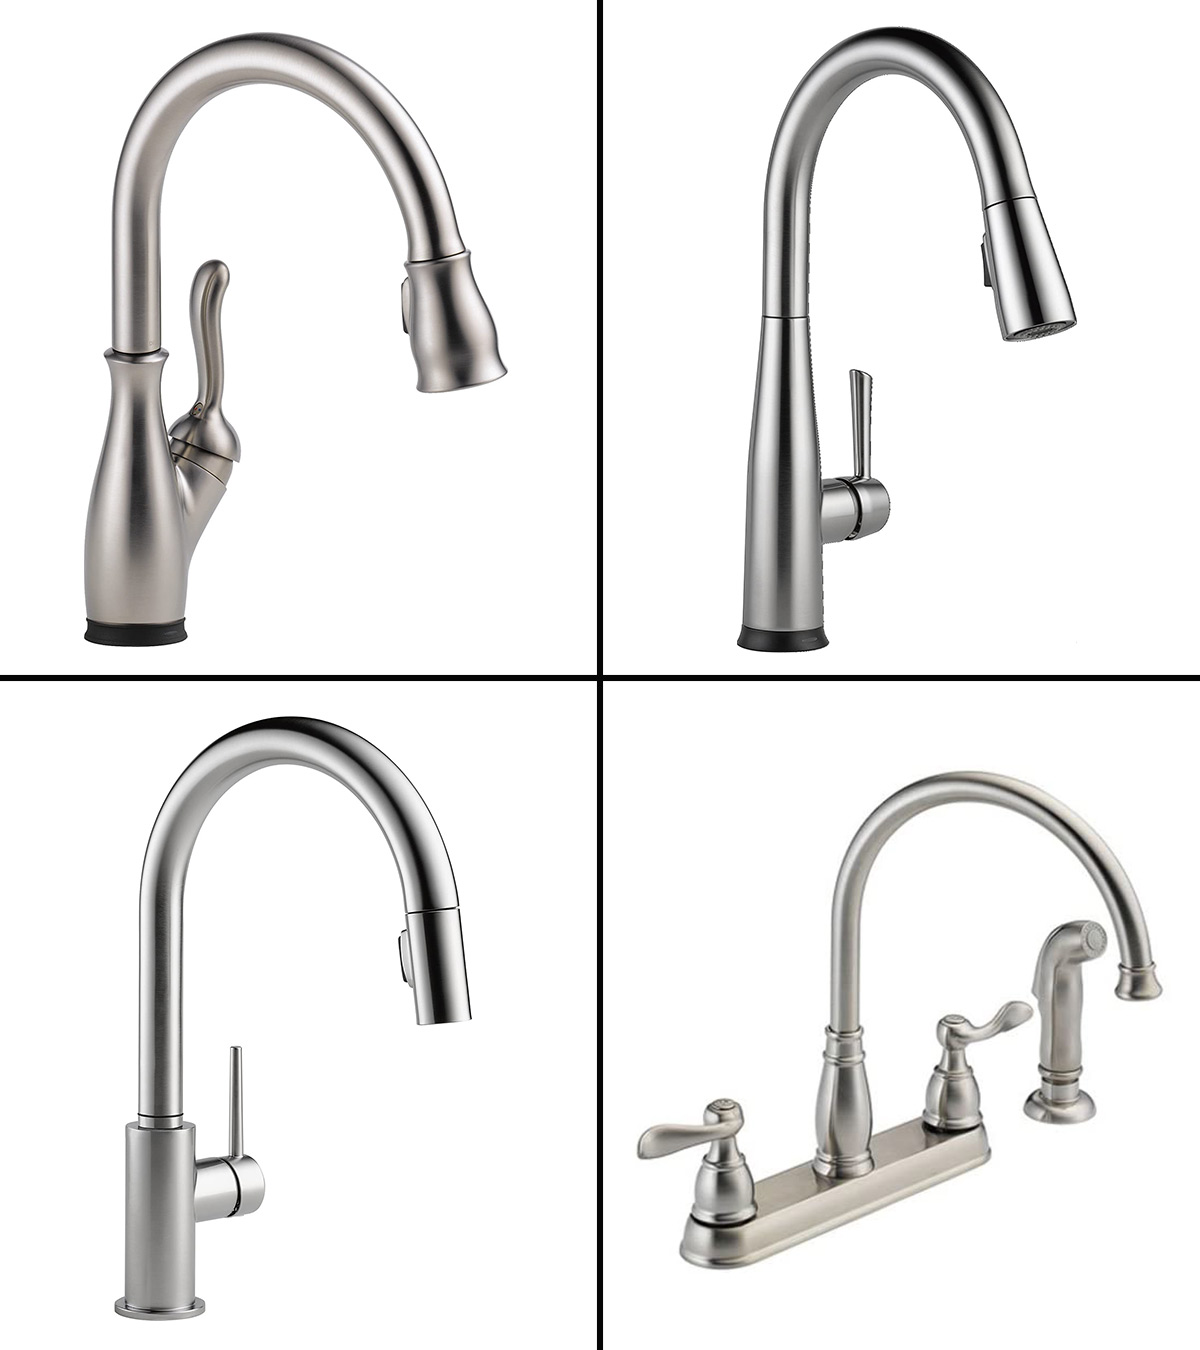 11 Best Delta Kitchen Faucets Of 2021